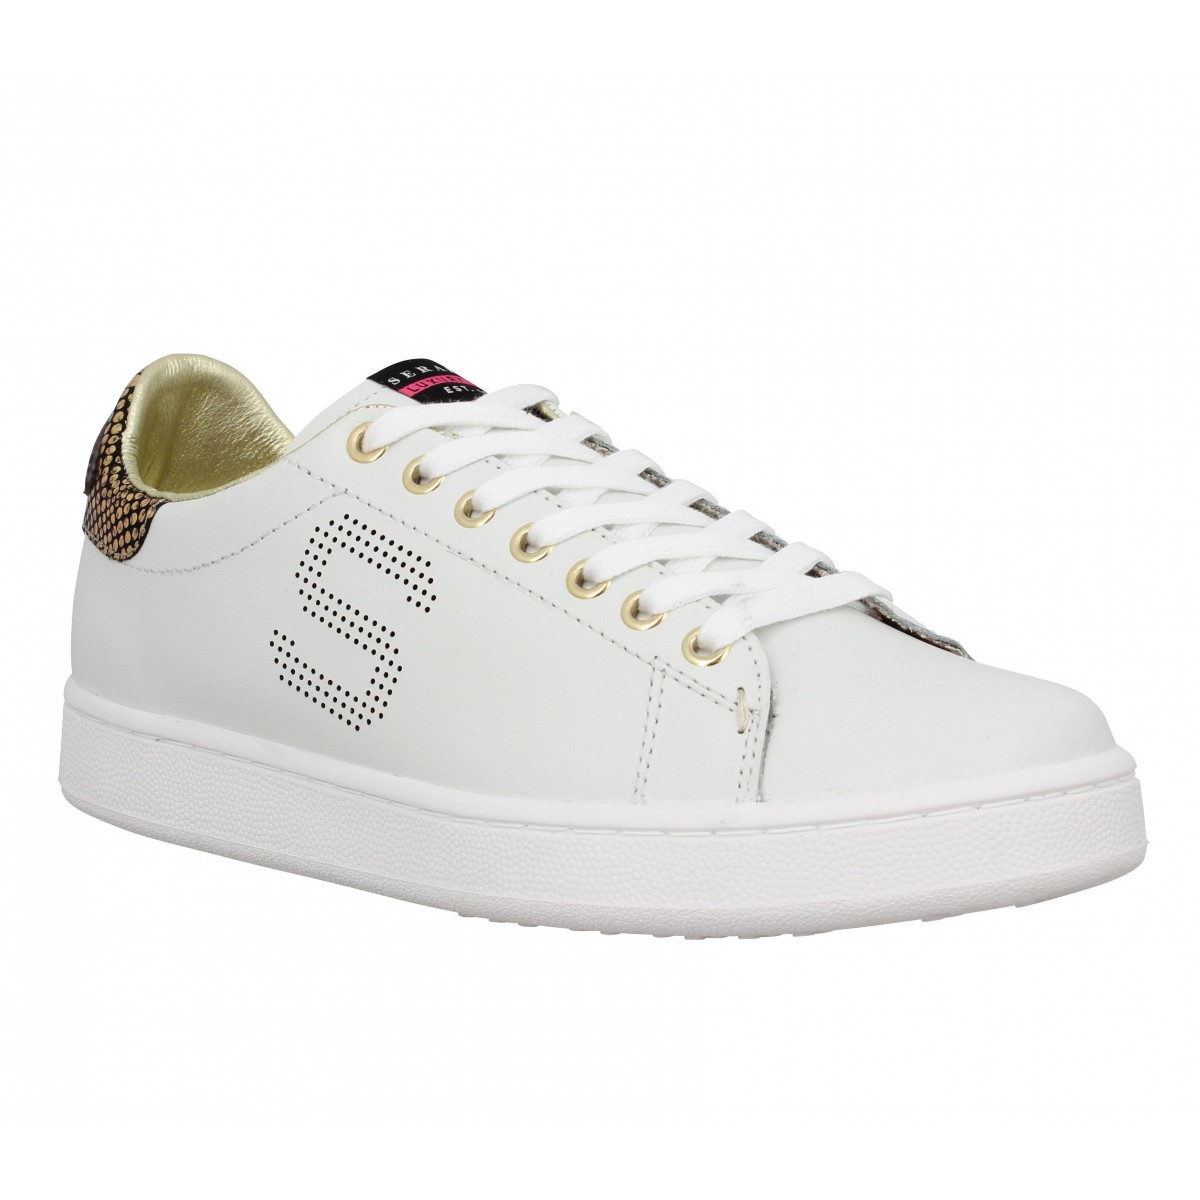 6063cd77e0 Serafini connors lacet cuir femme blanc or | Fanny chaussures